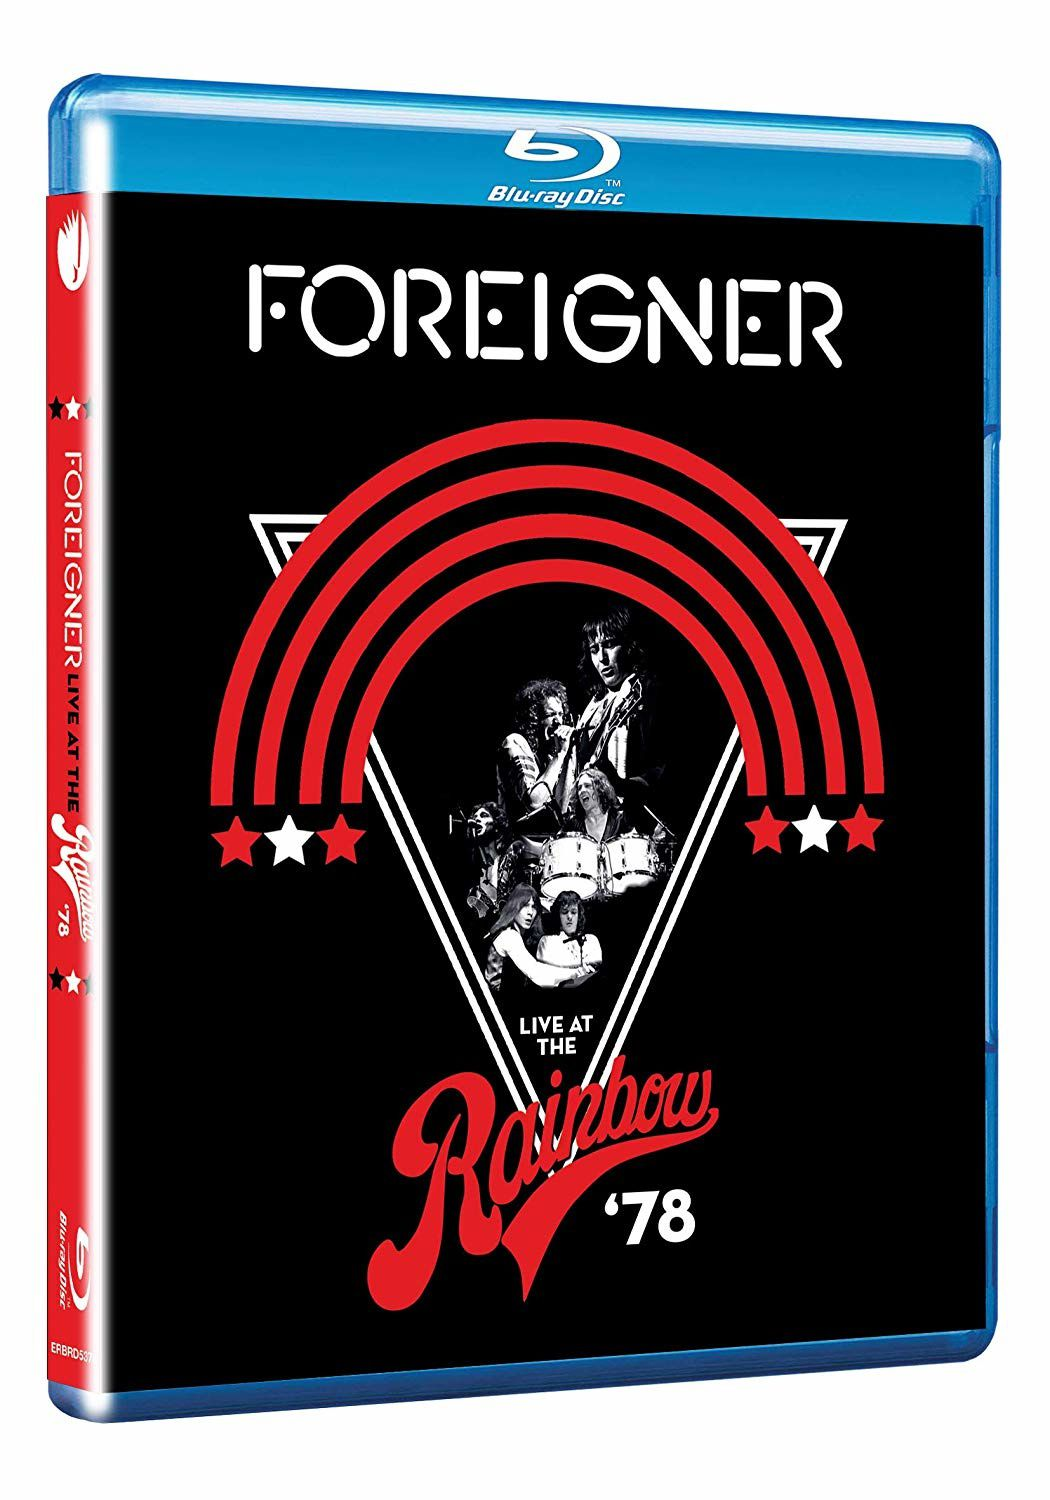 Foreigner - Live At The Rainbow '78 - Actuellement en DVD